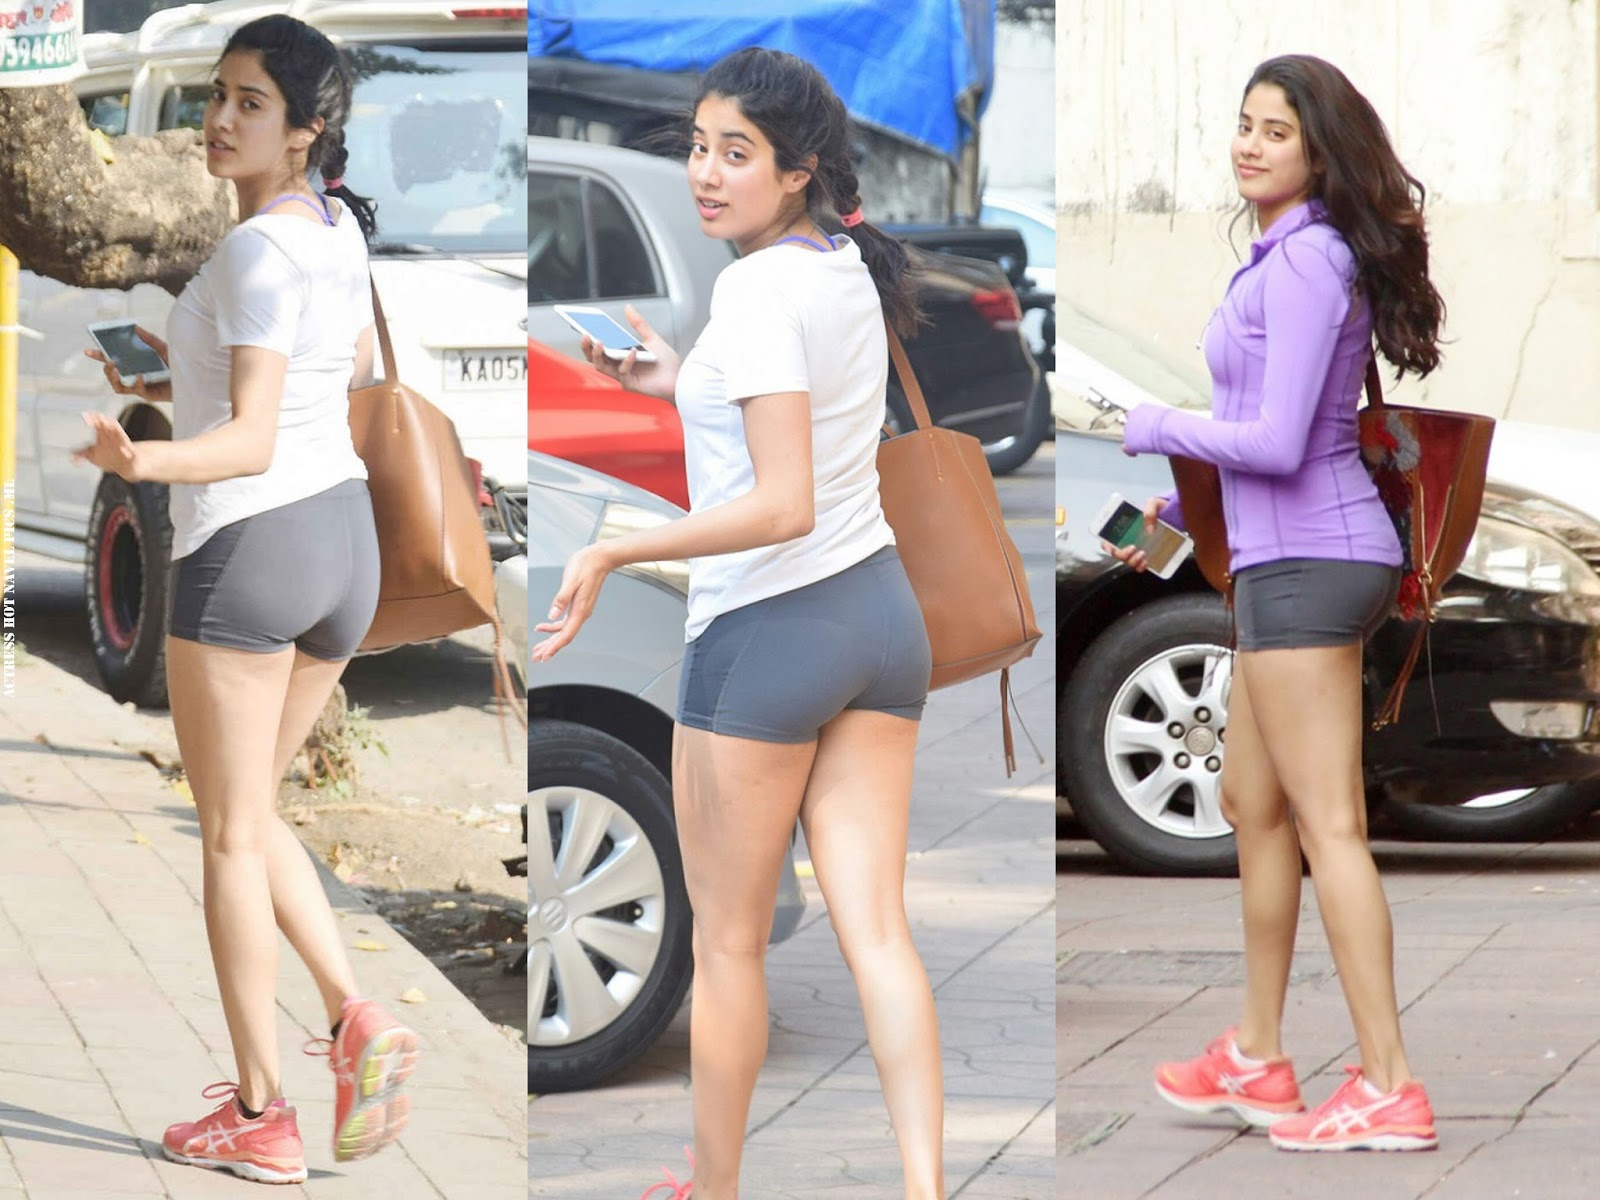 Akash Name Wallpaper In Hd Sridevi S Daughter Jhanvi Kapoor Hot Thighs Show Spotted